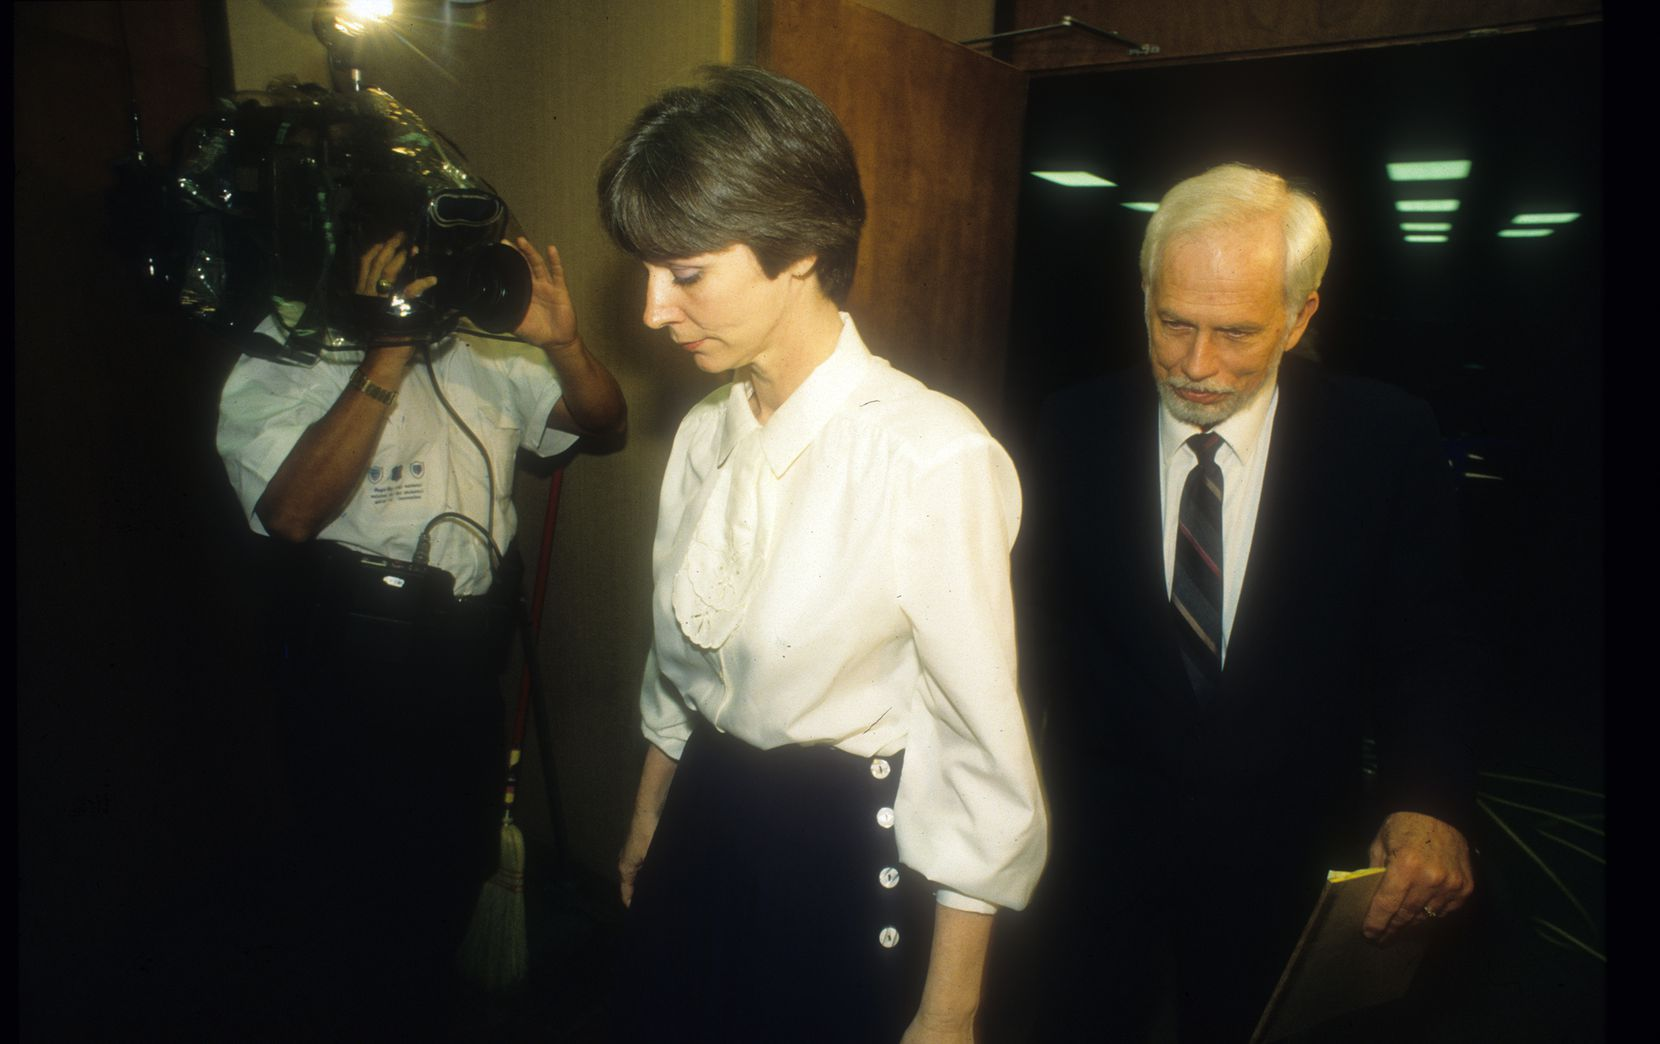 """Frances """"Fran"""" and Daniel """"Dan"""" Keller leave the courtroom in 1992 following testimony in their sexual assault trial."""